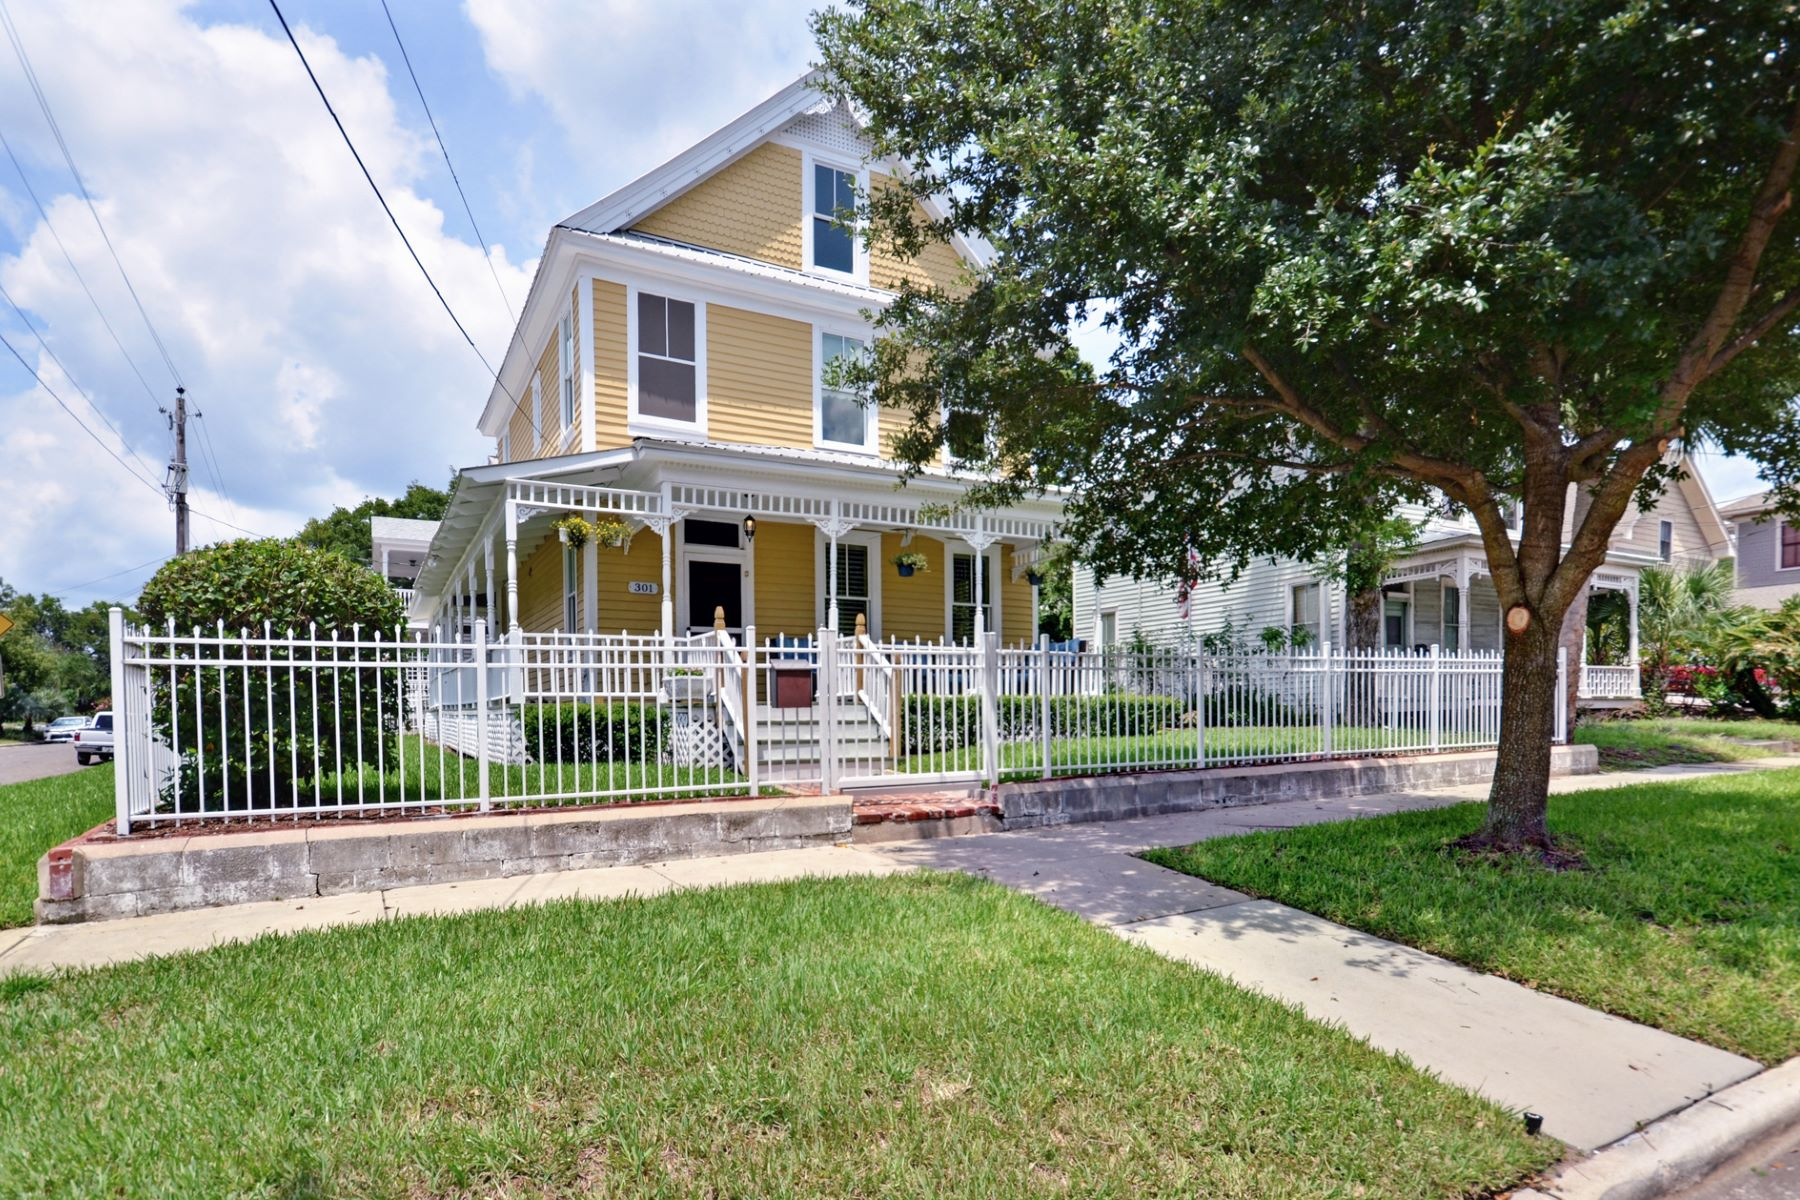 House for Sale at 301 Broome Street Fernandina Beach, Florida 32034 United States